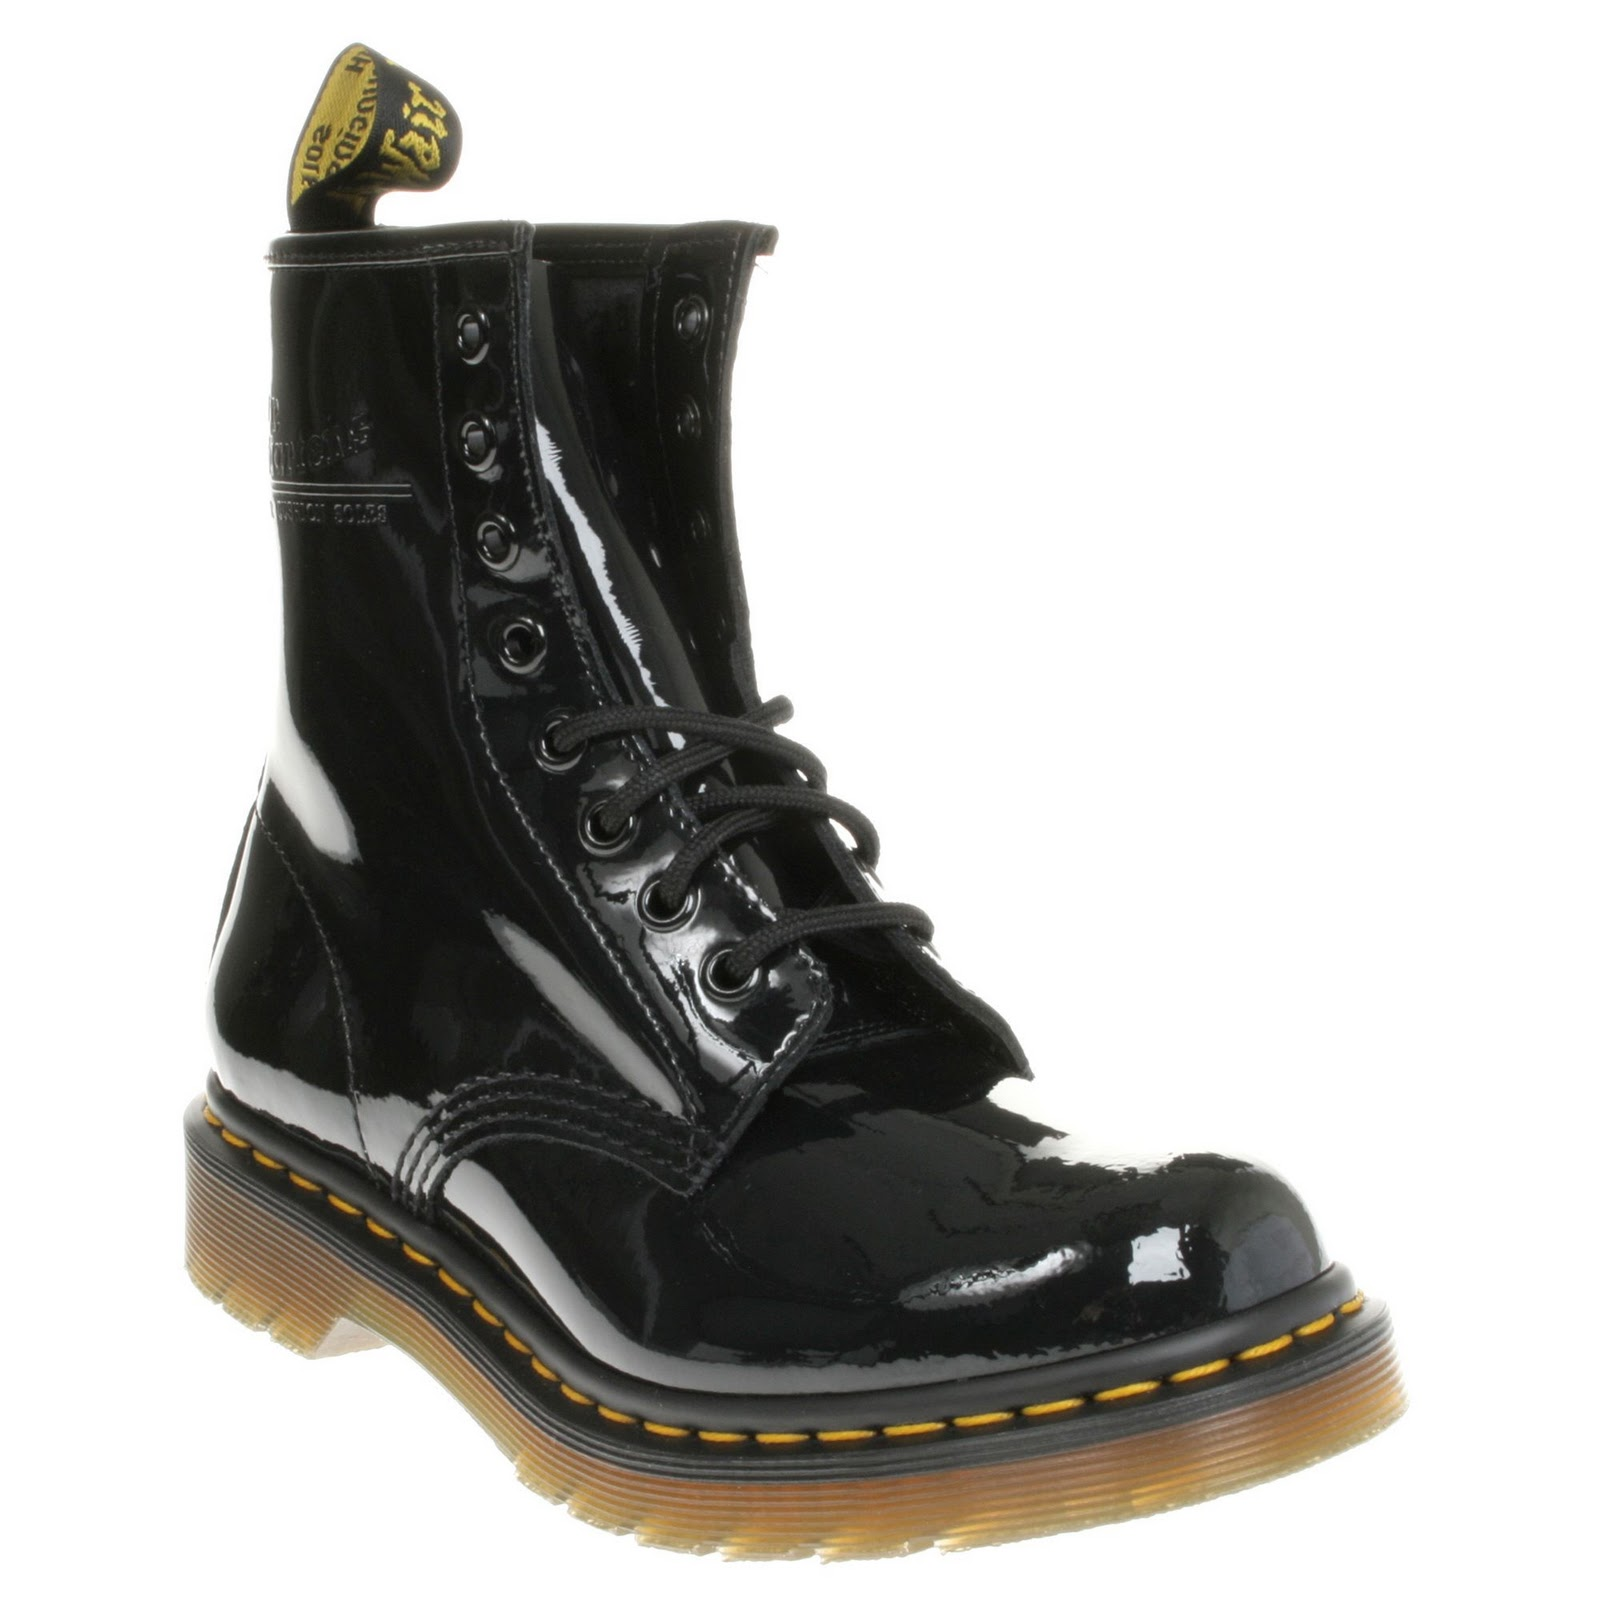 diary of a high moi in a pair of dr martens